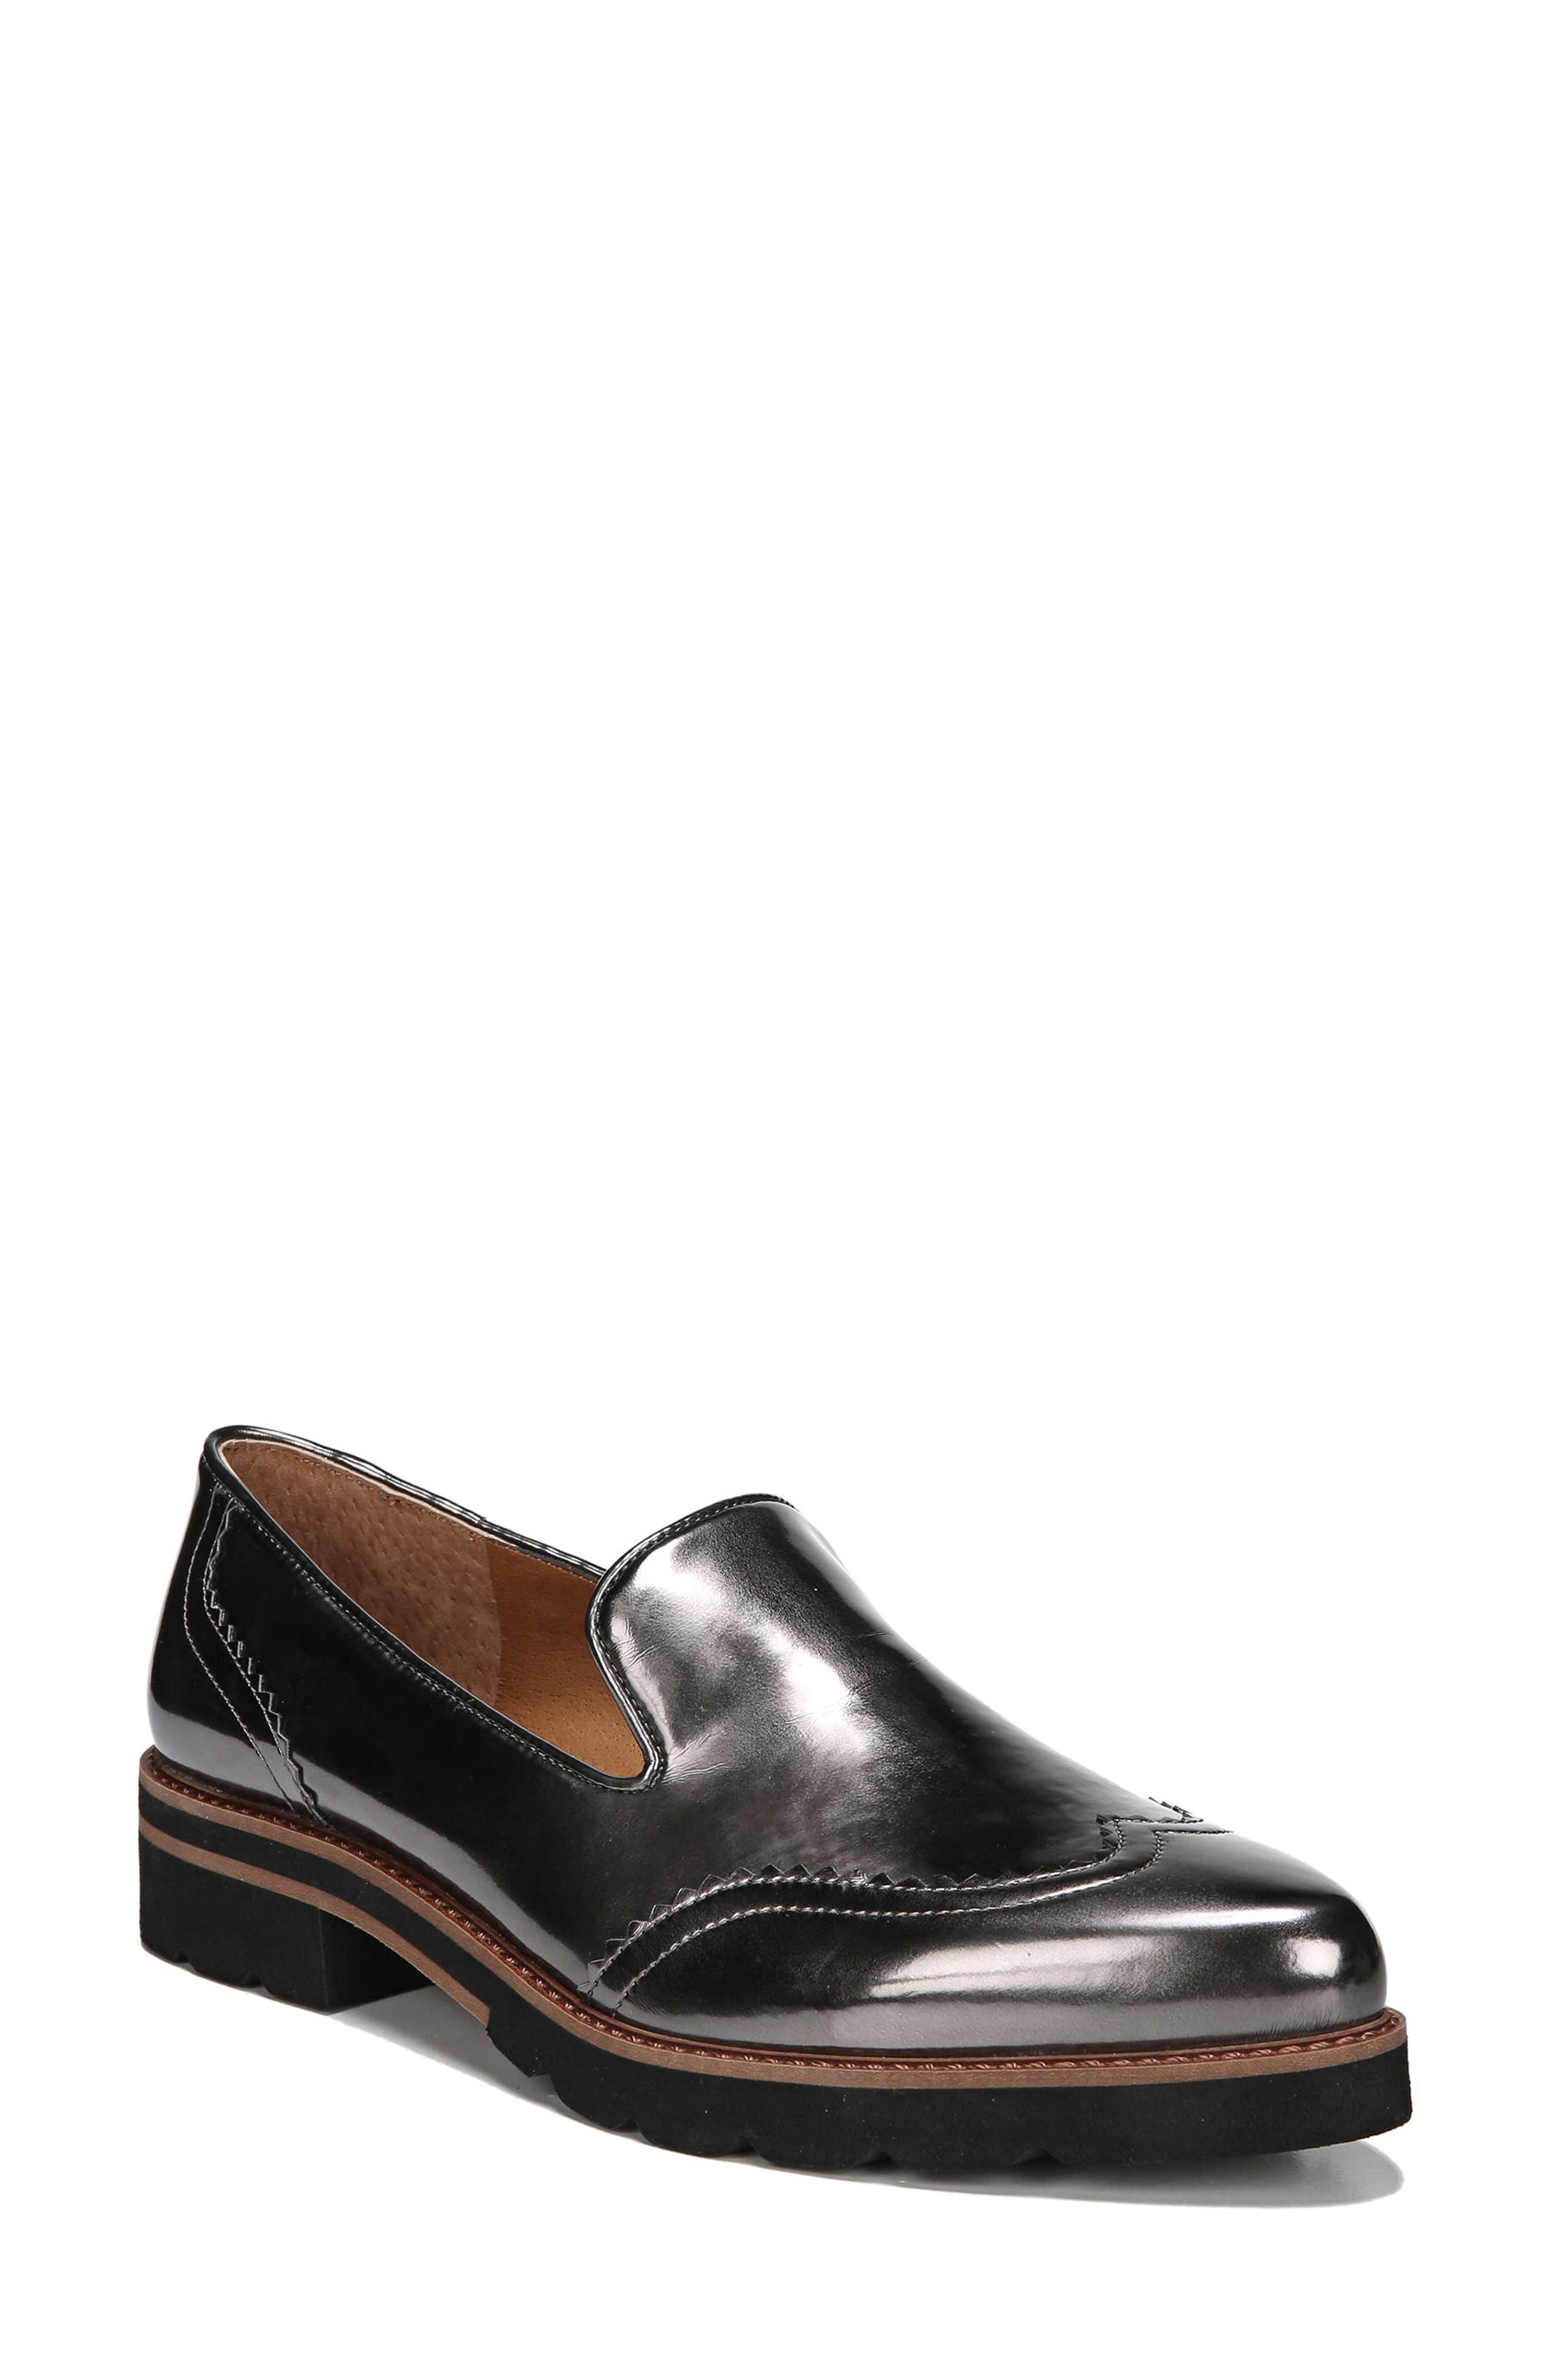 Betsy Loafer,                             Main thumbnail 1, color,                             GUNMETAL FAUX PATENT SUEDE